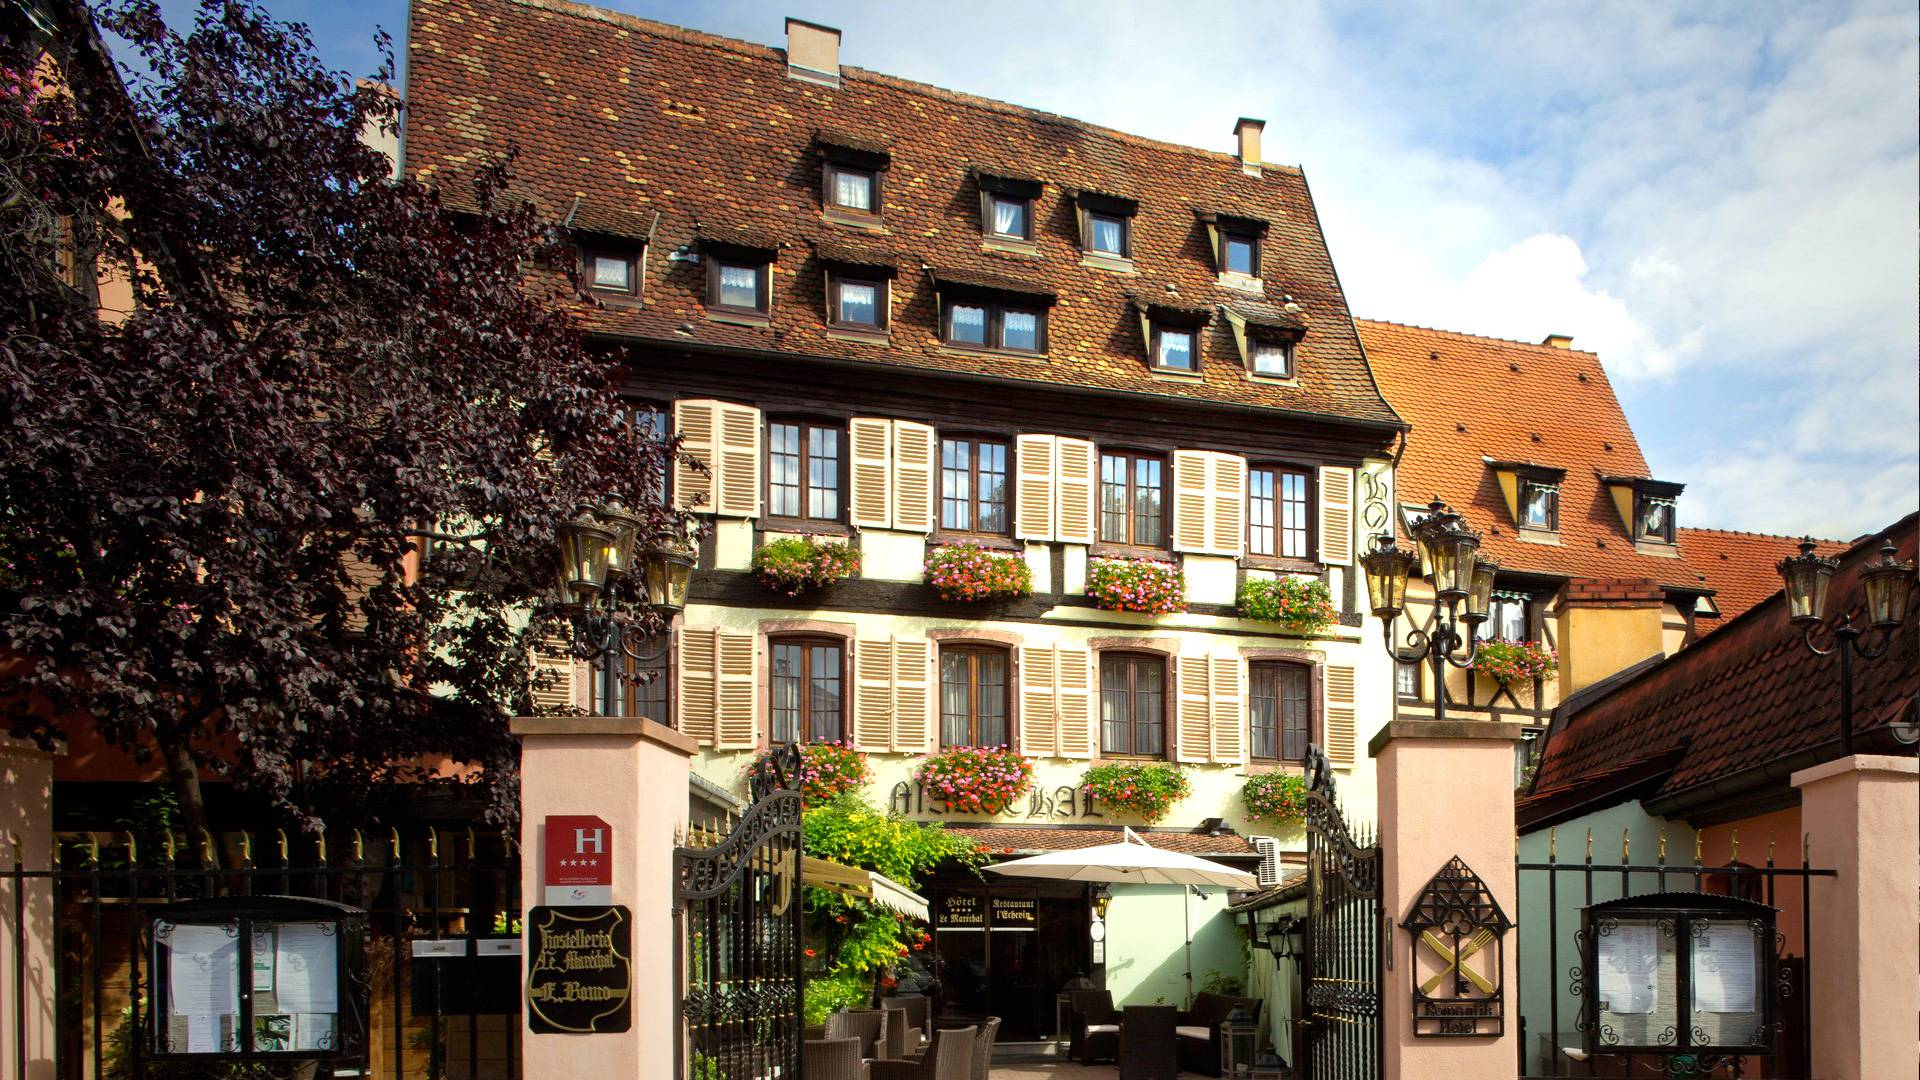 Office de tourisme de colmar en alsace hostellerie le mar chal - Office de tourisme de colmar ...